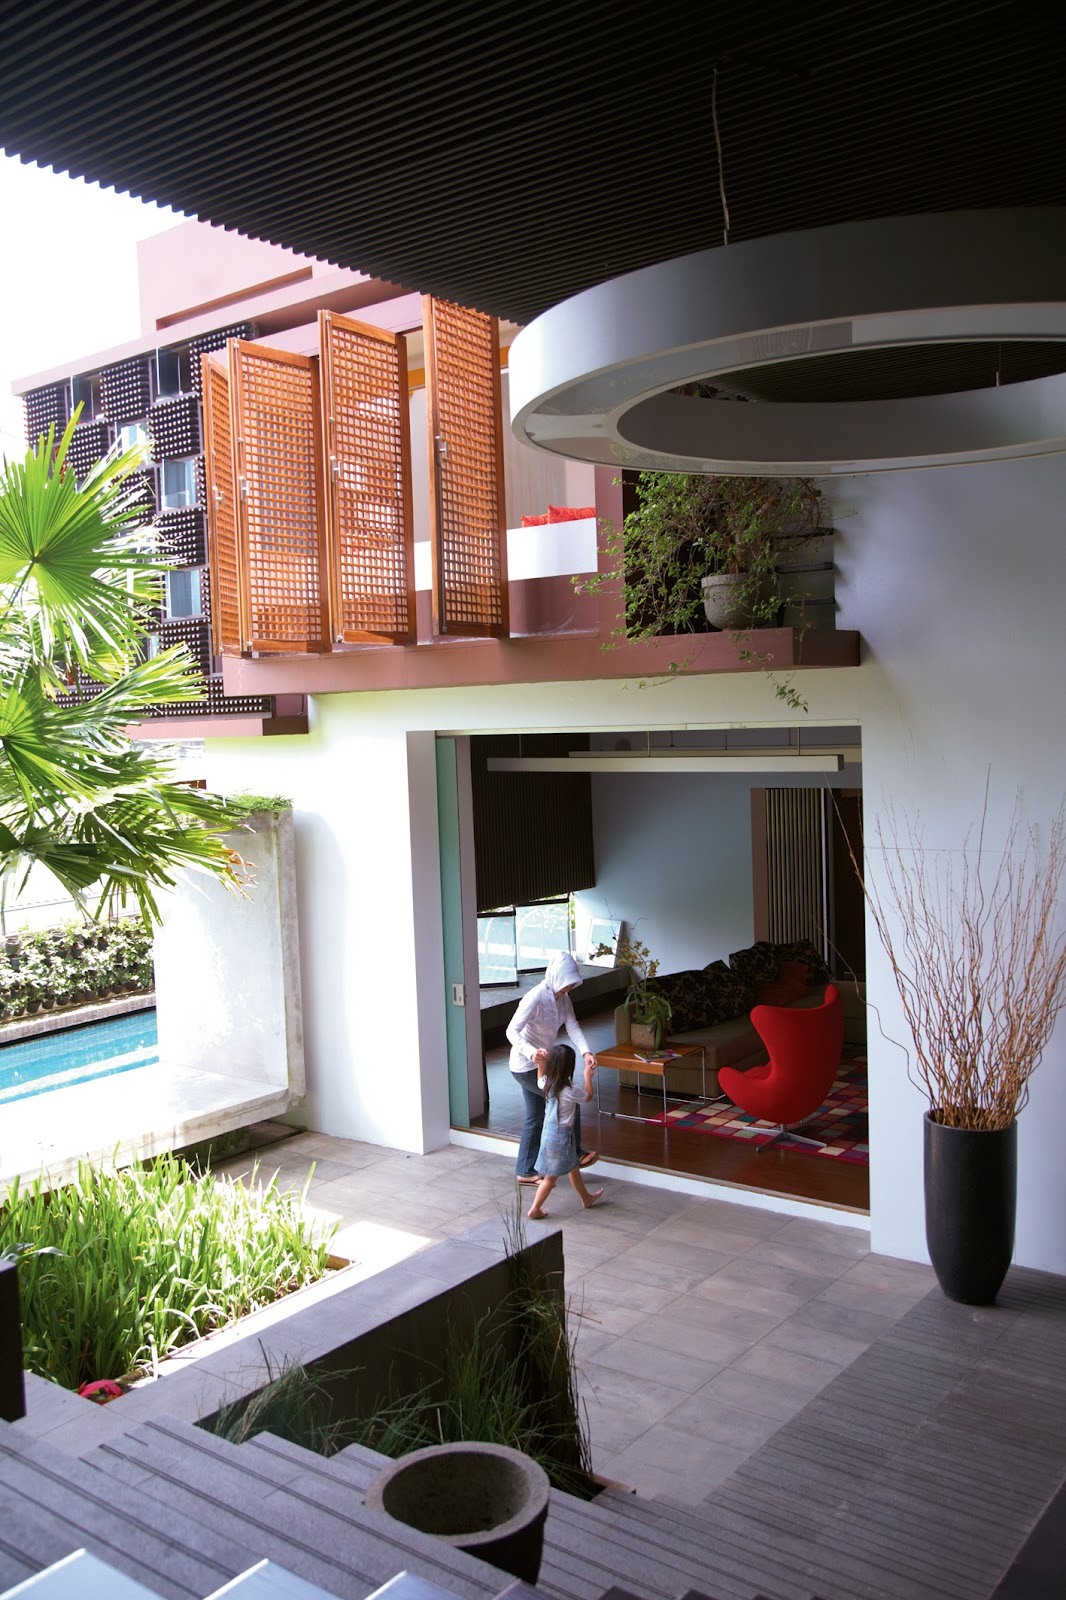 style & decorating: House of bottle on birdhouse house designs, wooden doll house designs, box house designs, miniature house designs, pump house designs, playing card house designs, toothpick house designs, glass house designs, tube house designs, boxcar house designs,